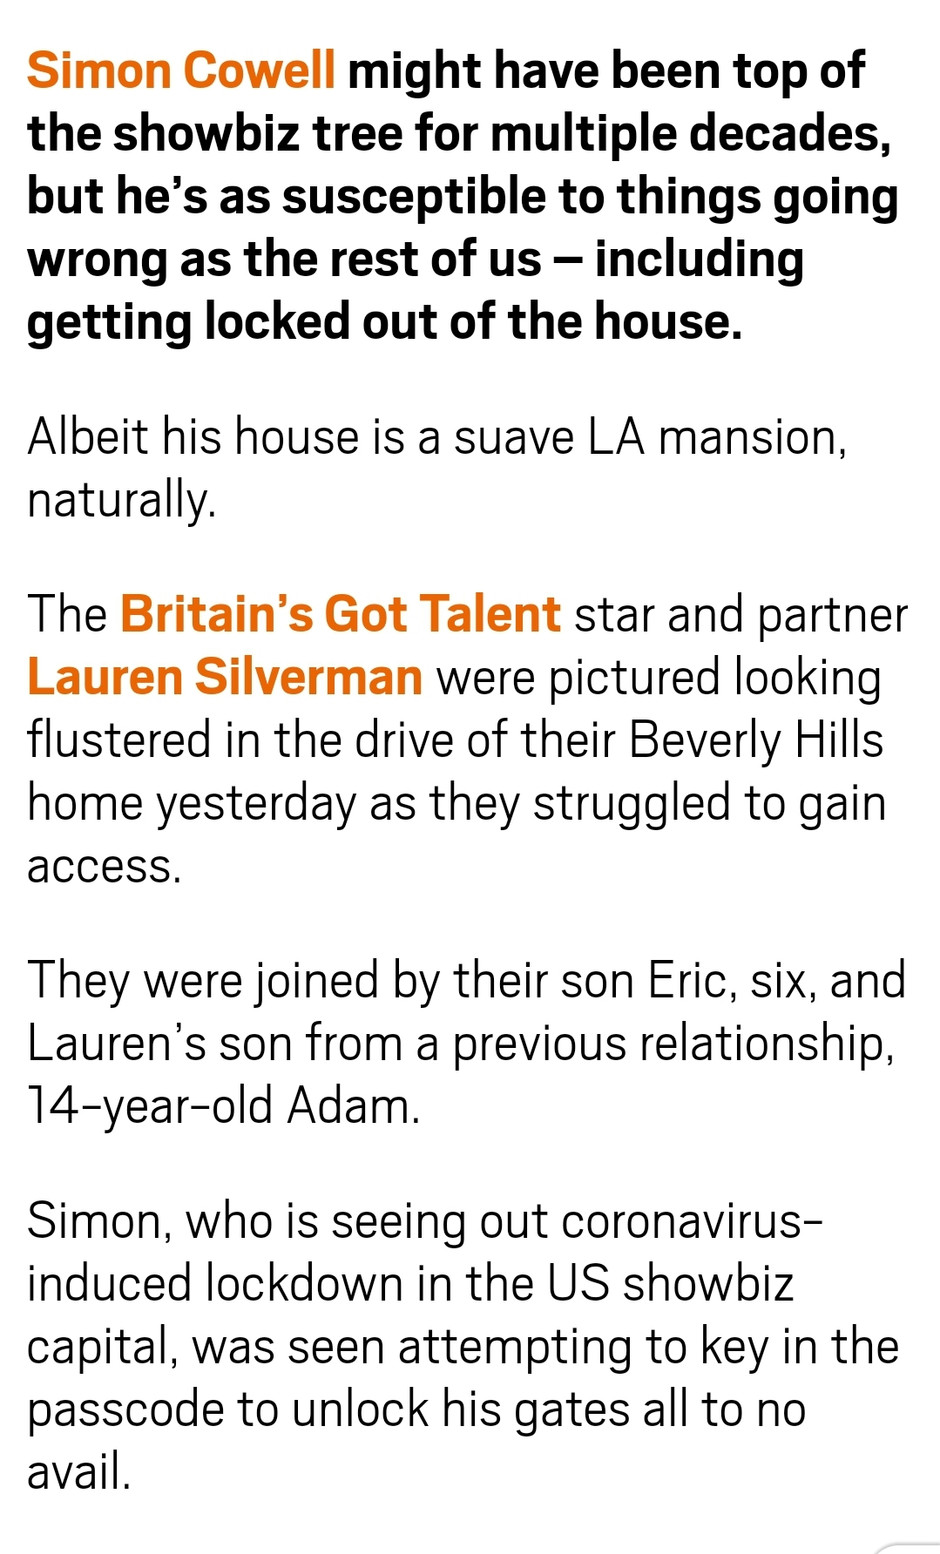 Simon Cowell locked out